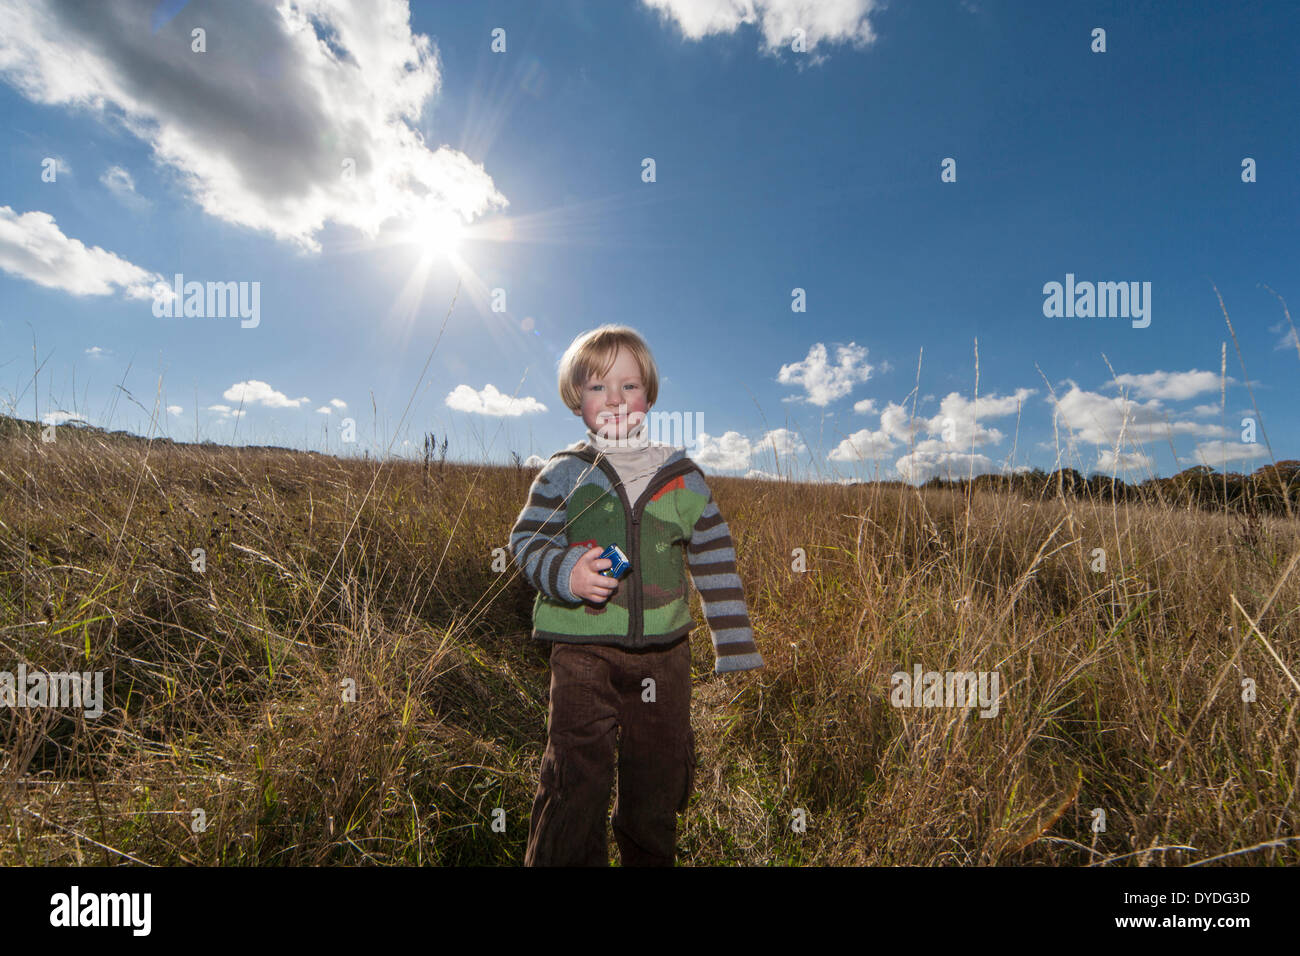 A two year old boy running in the countryside on a sunny day. - Stock Image